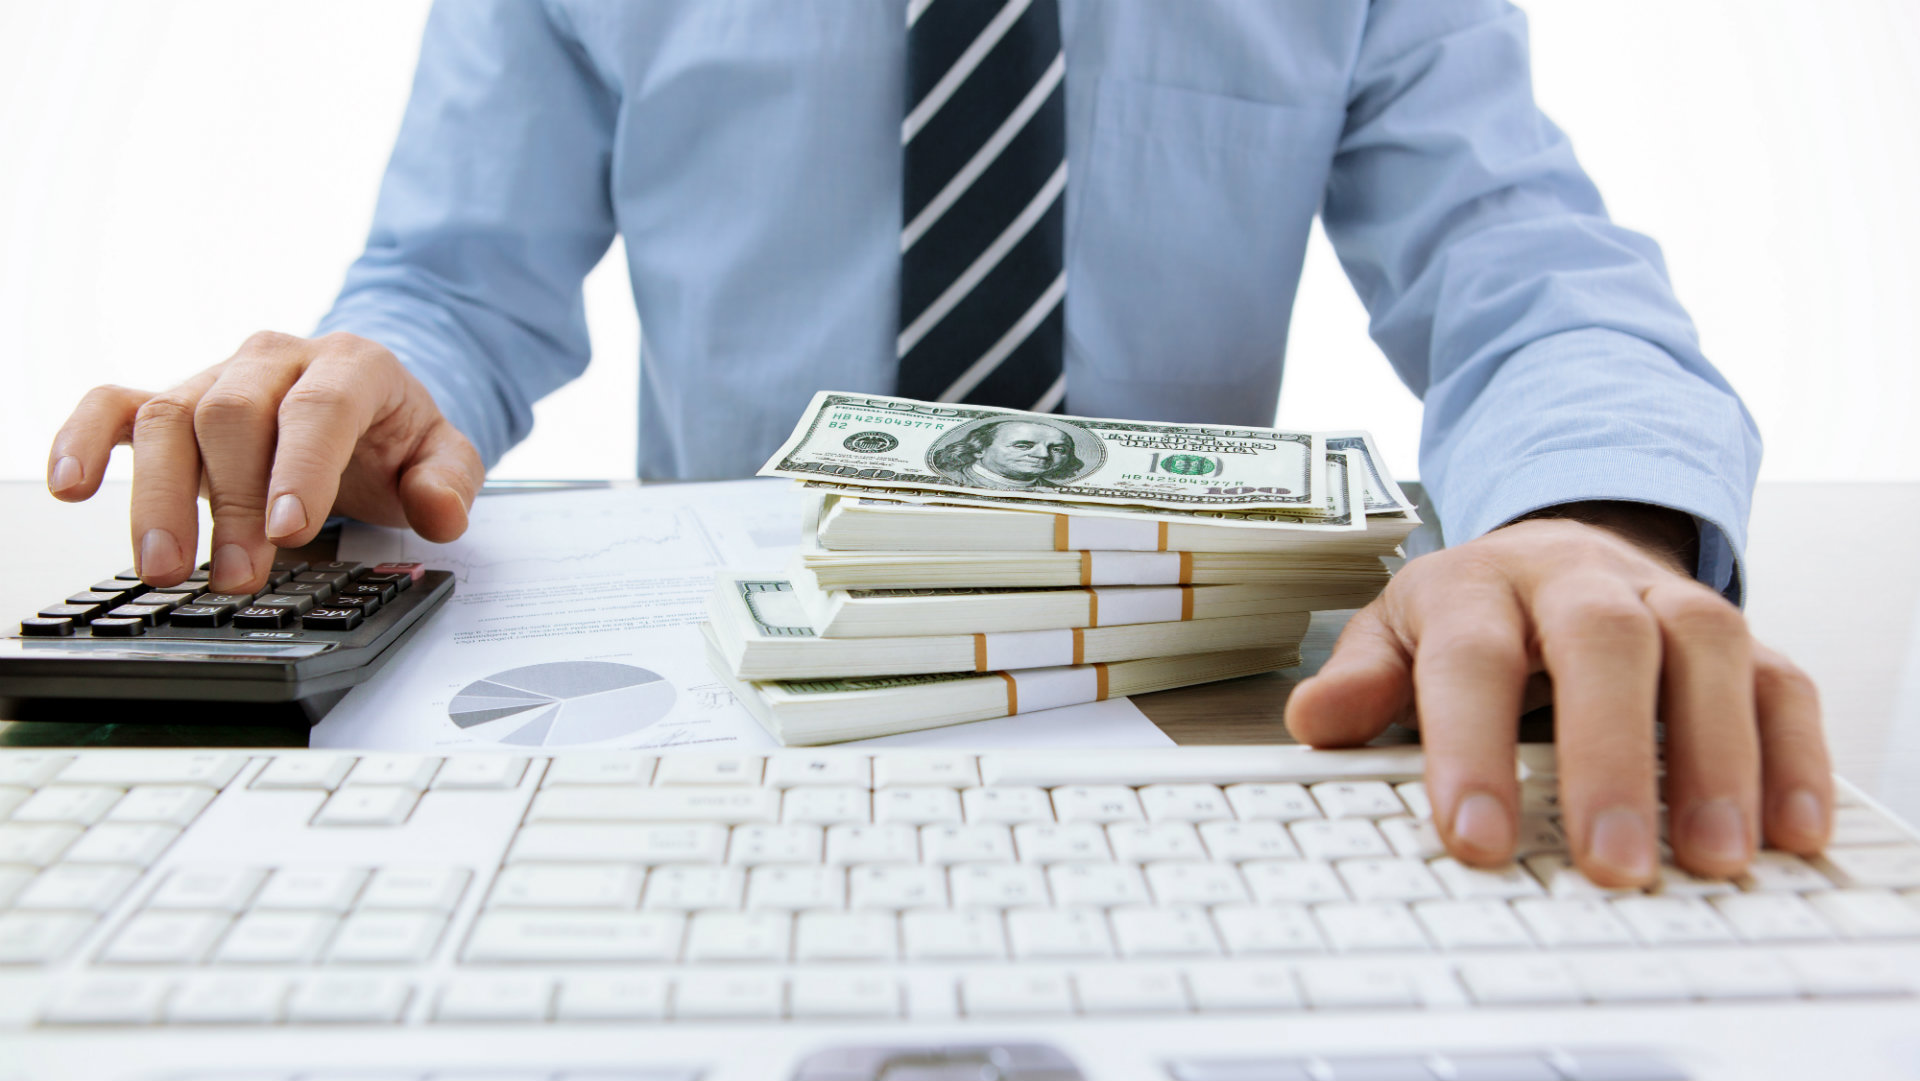 accountant in front of computer with money